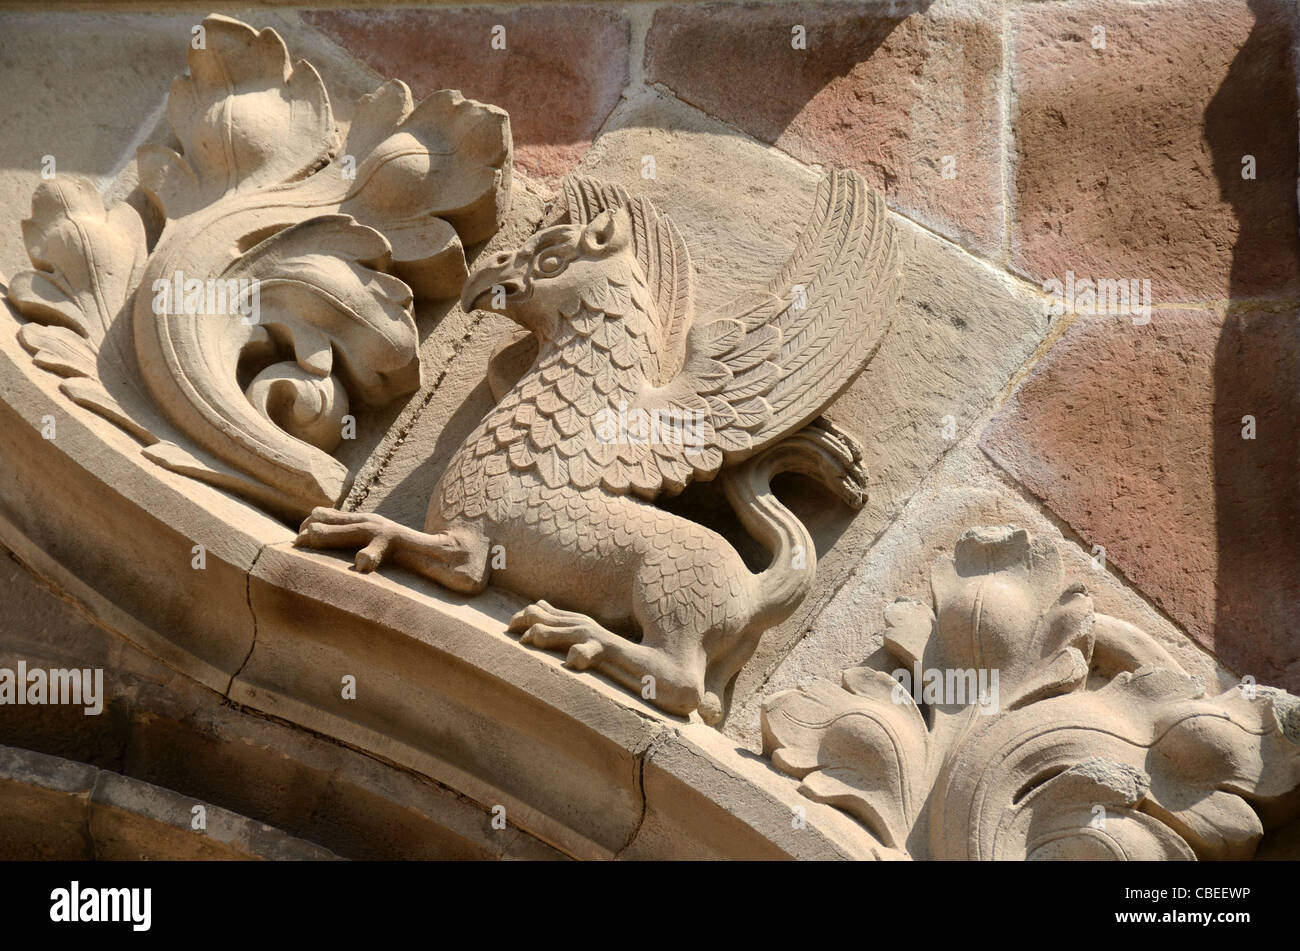 Stone Carving of Dragon, Griffin, Griffon or Gryphon at Entrance to Saint-Léonce Cathedral Frejus France - Stock Image